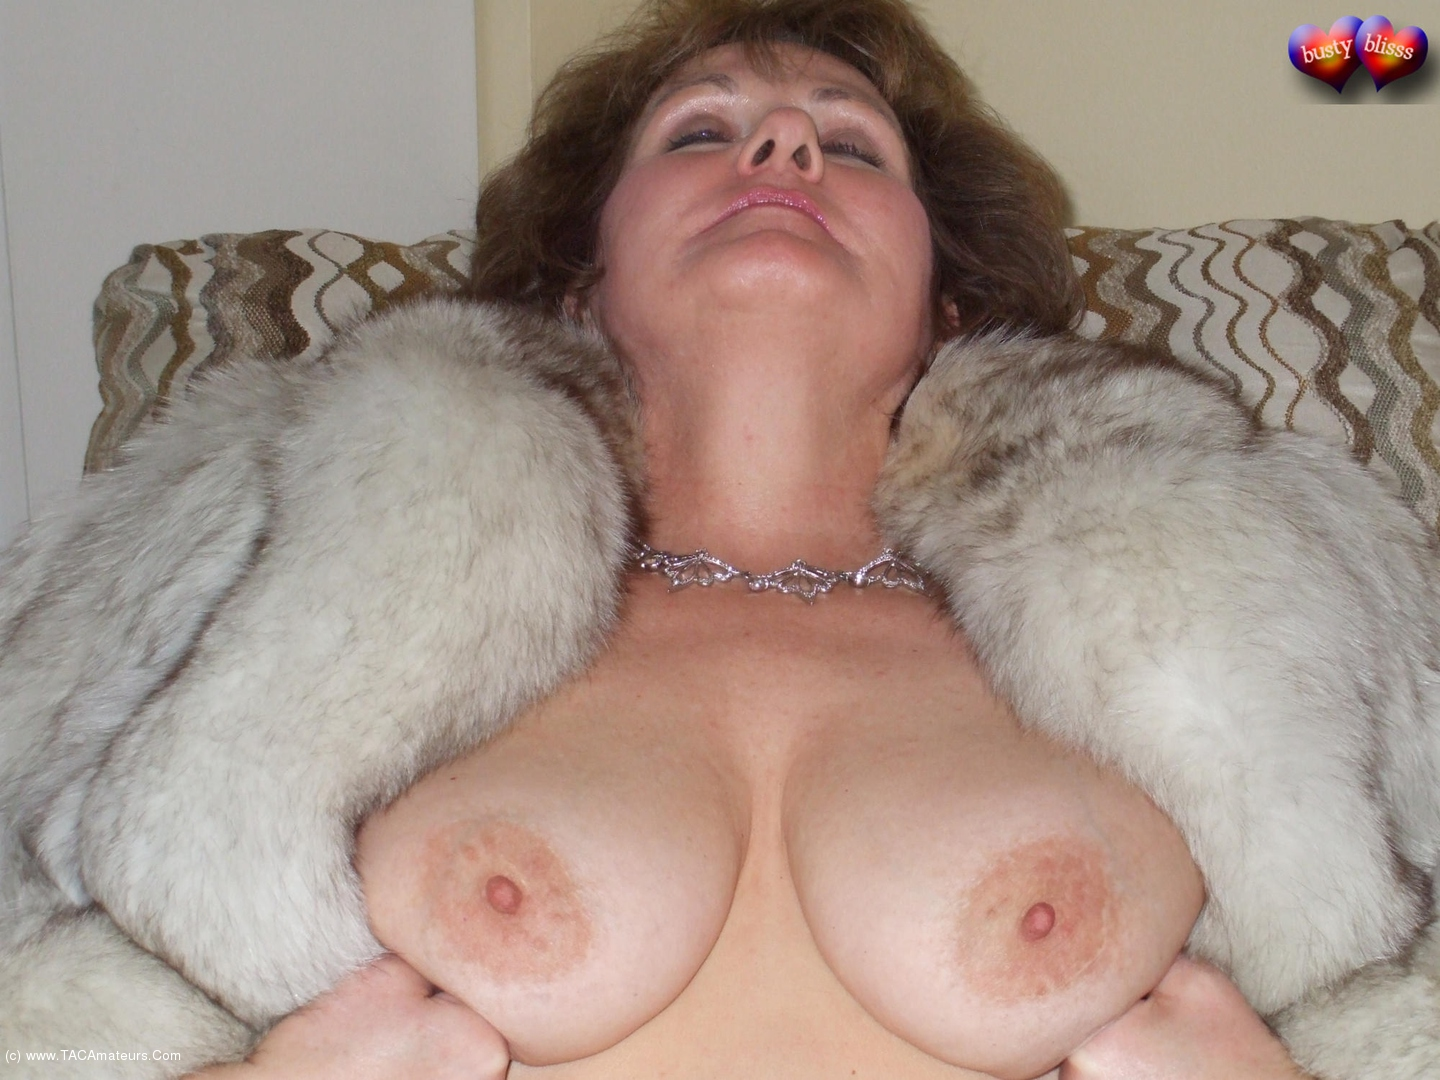 BustyBliss - Busty Bliss In Fur Sucking & Cummed Breasts Pt1 scene 0